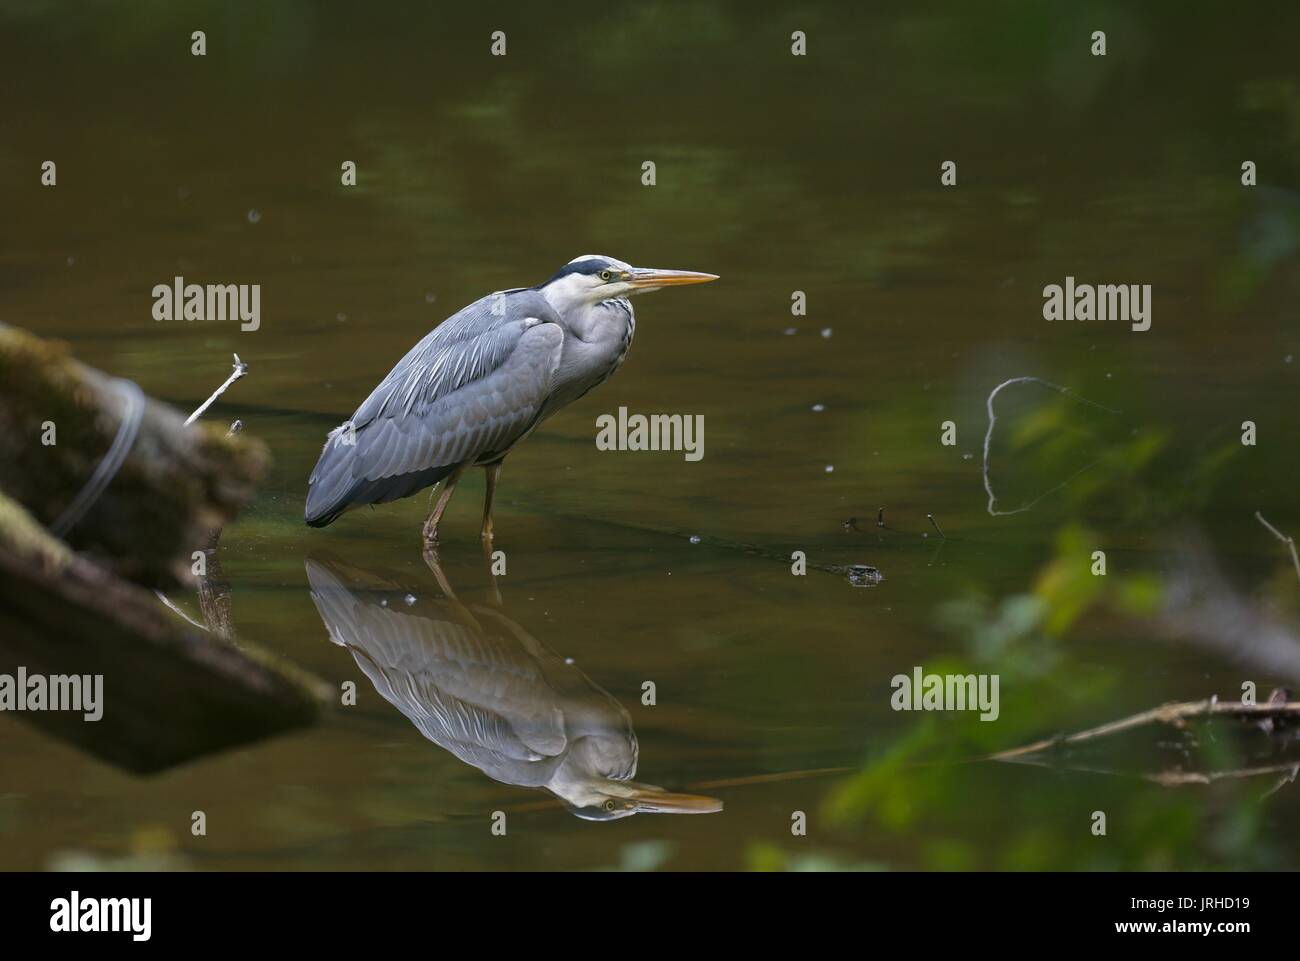 Grey Heron with its reflection standing in an urban pond - Stock Image